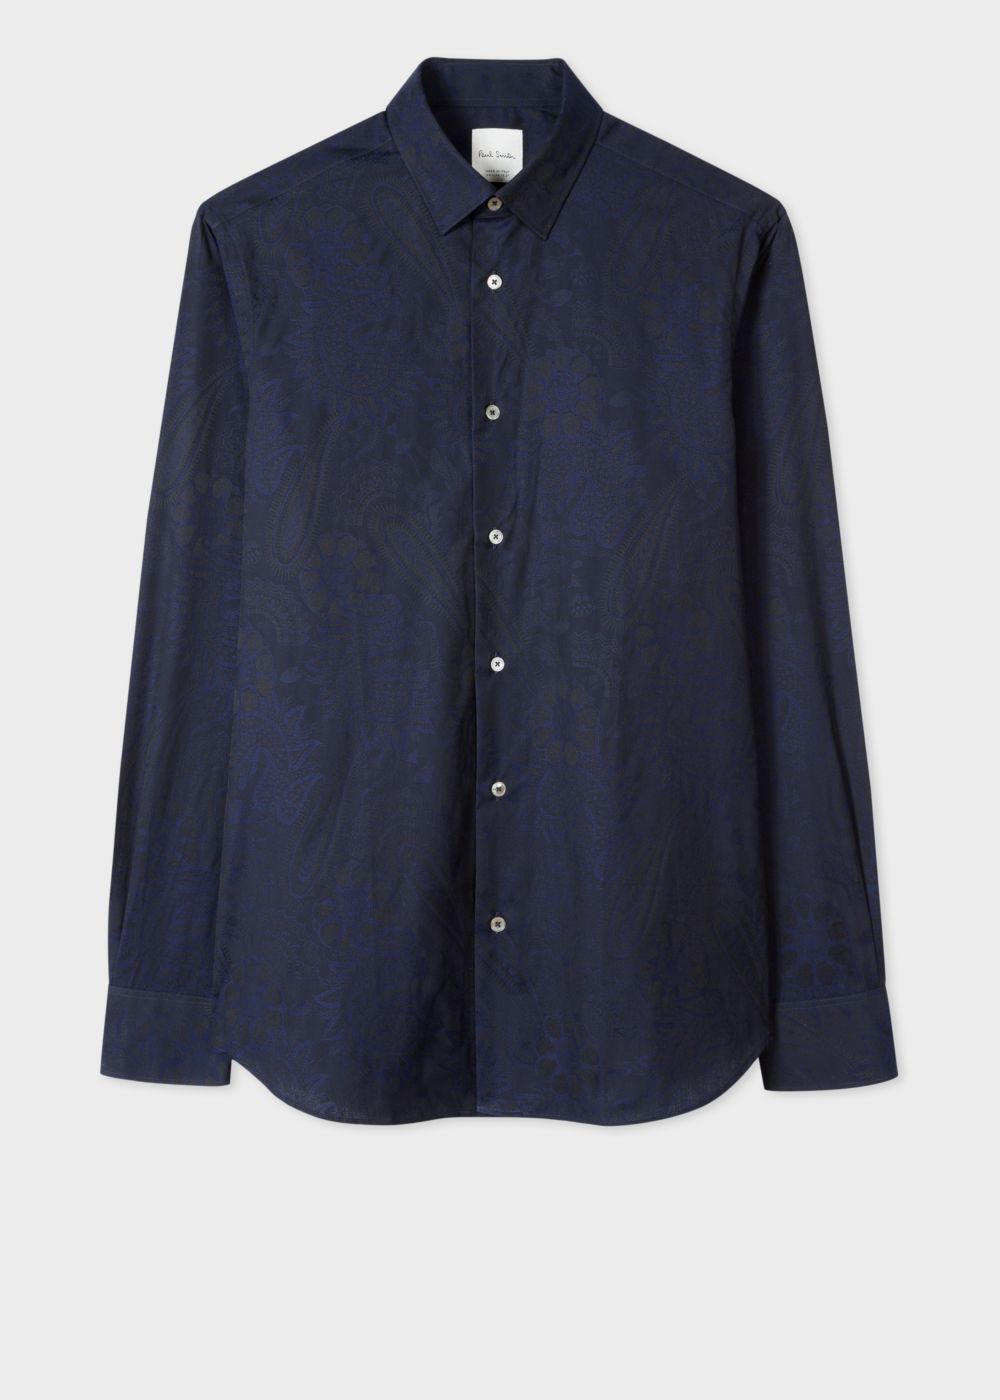 Paul Smith Men's Tailored-Fit Navy Paisley Jacquard Shirt